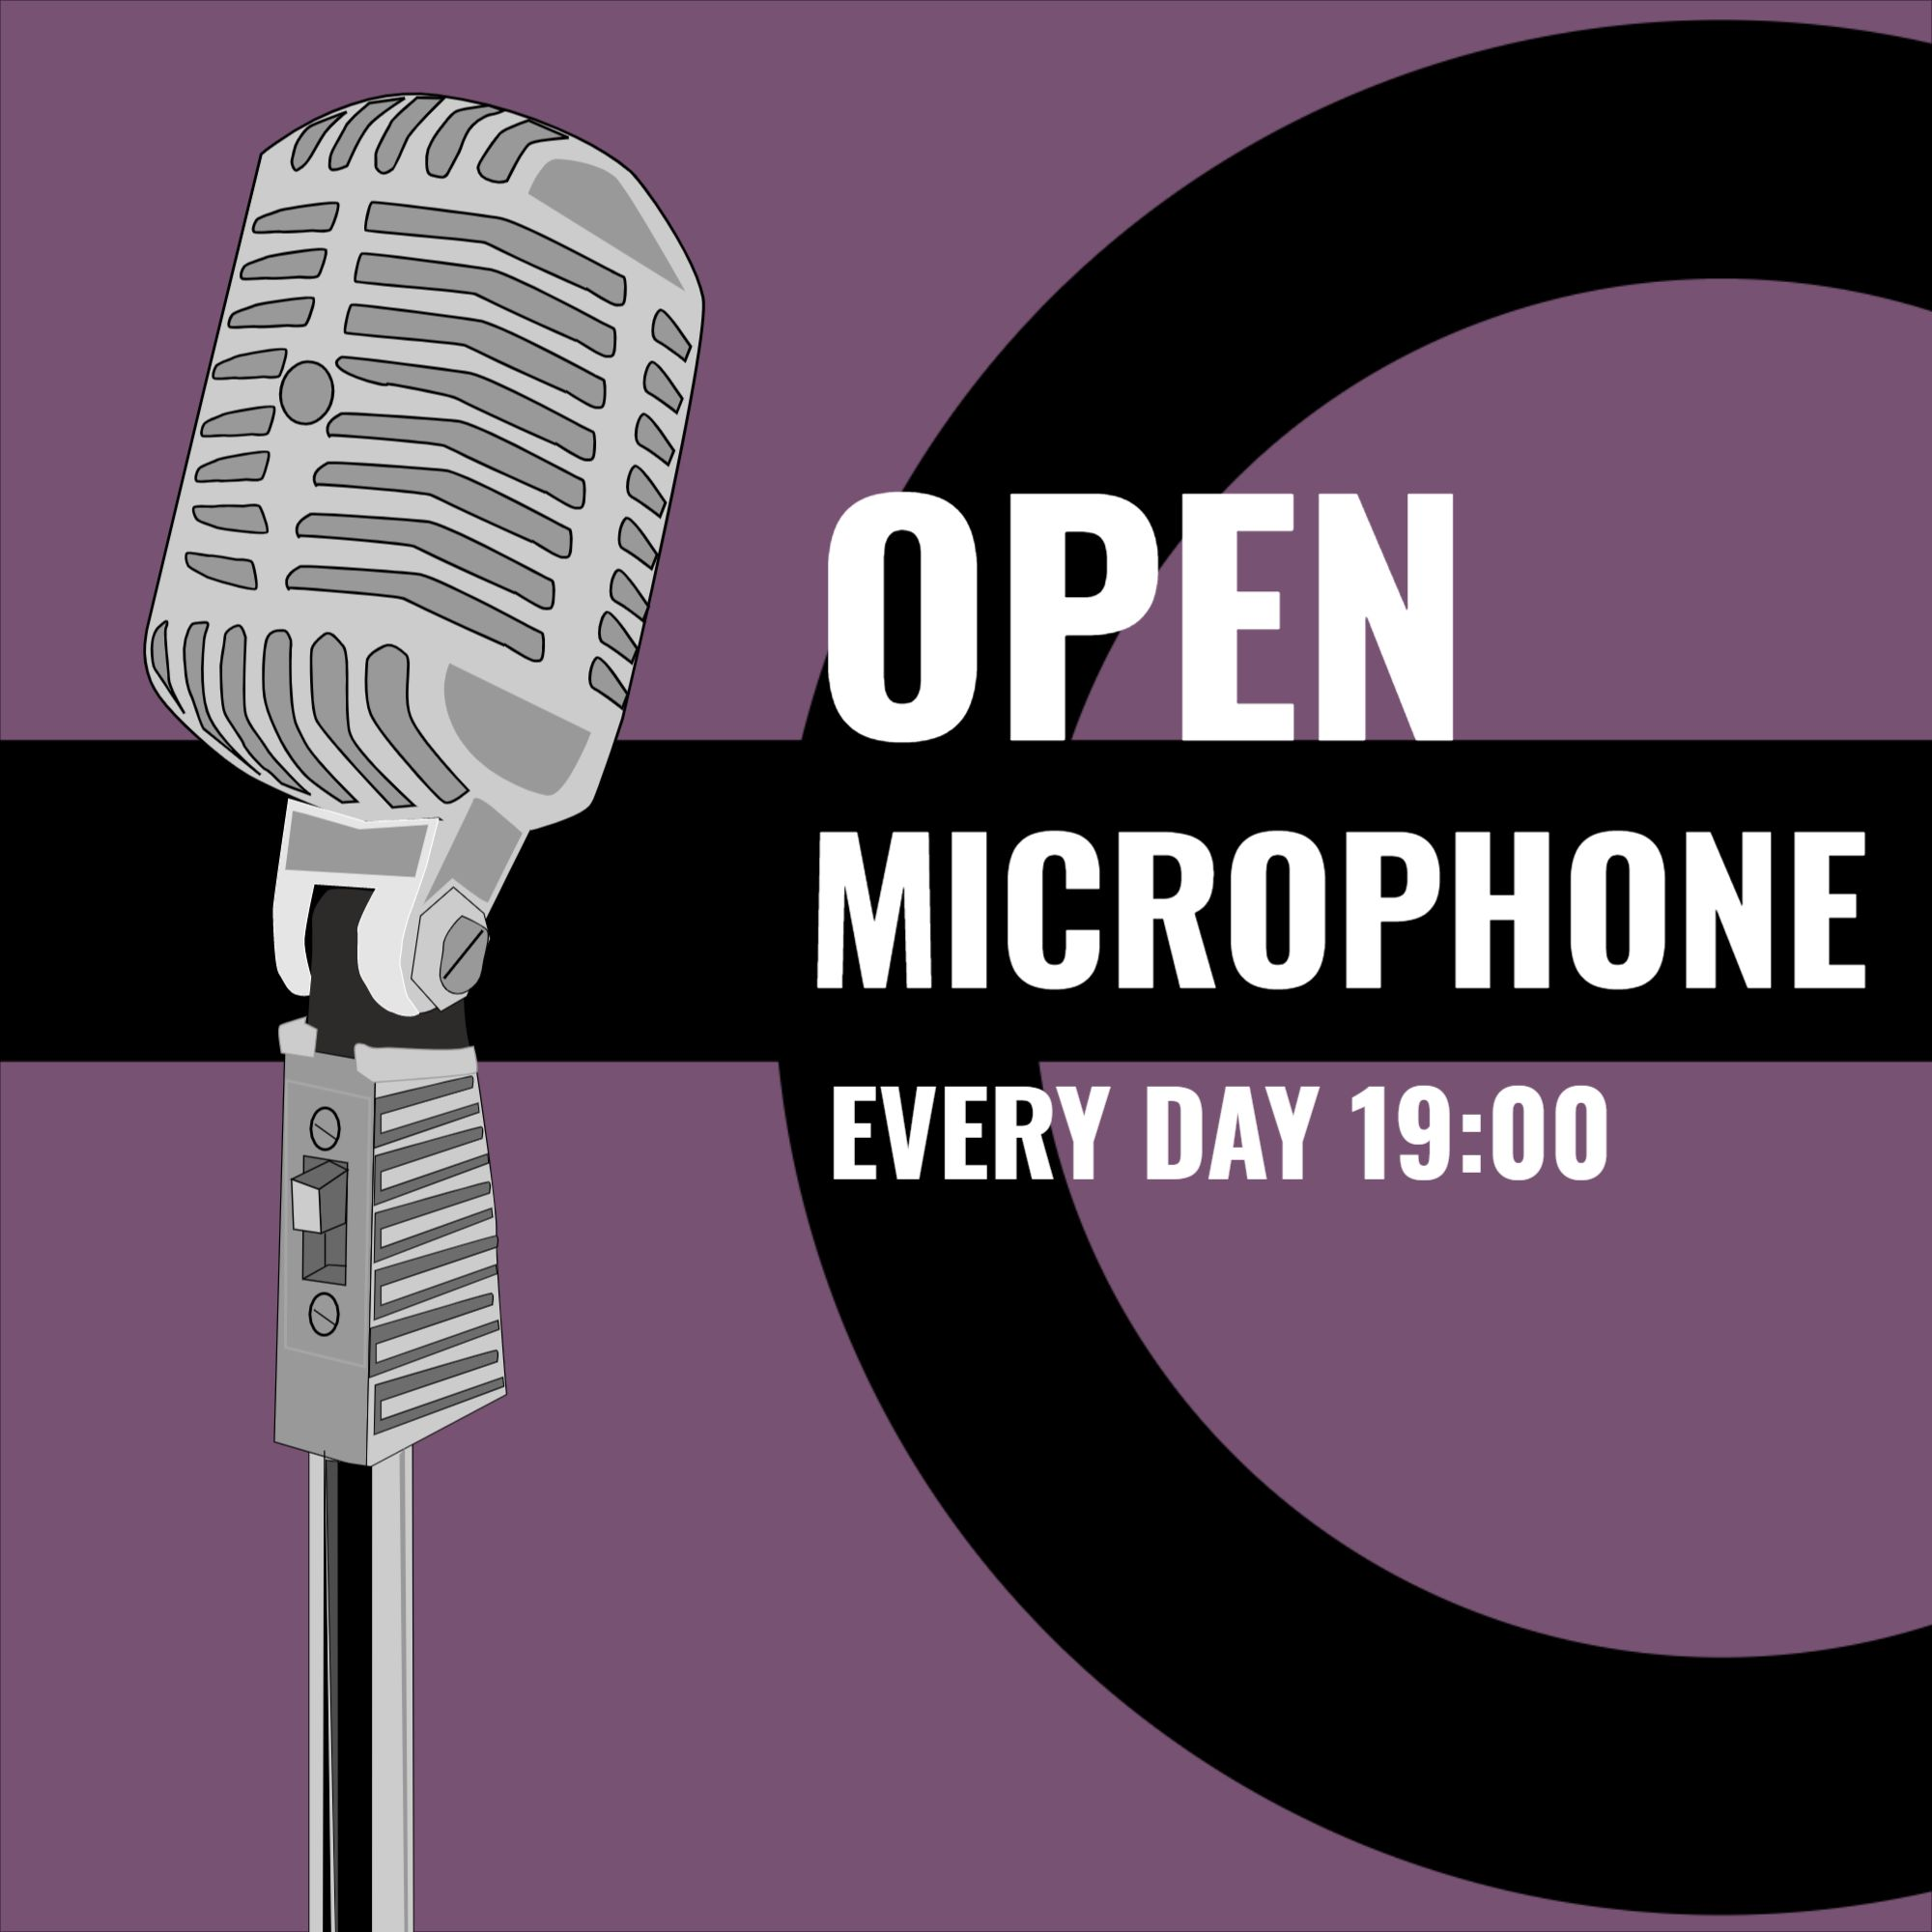 Open Microphone Podcast Cover Template